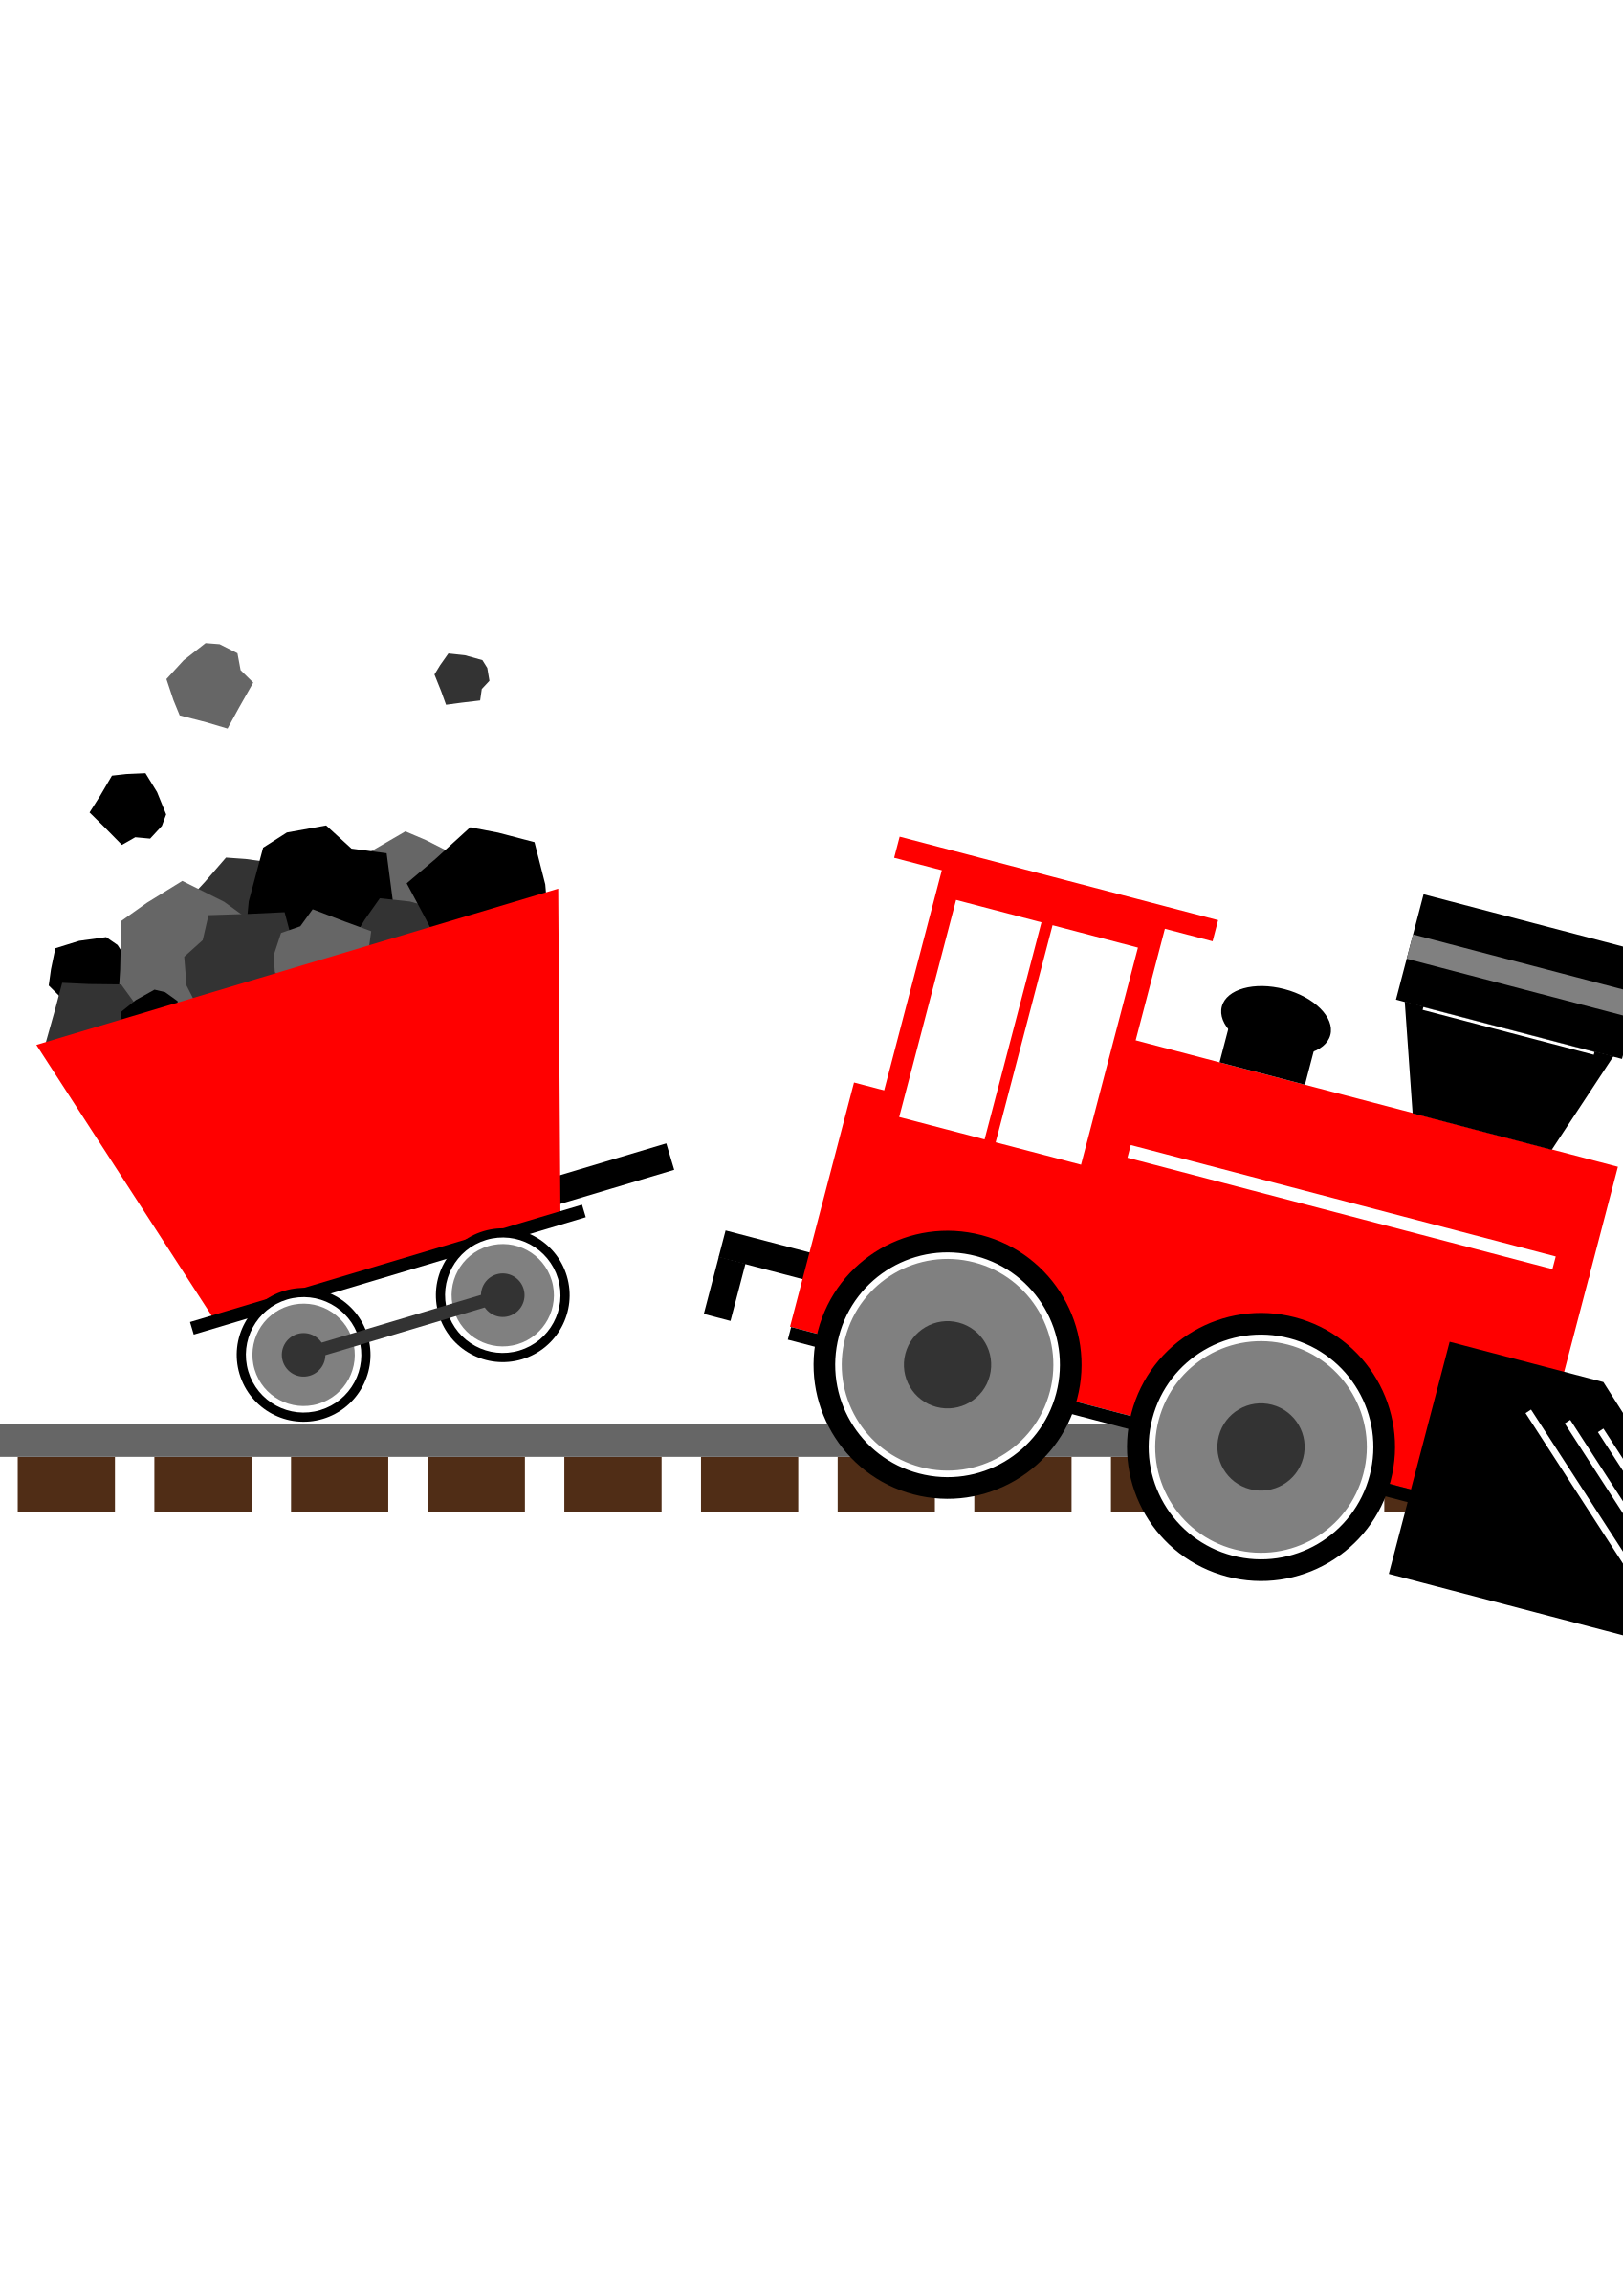 Engine clipart red train. Derailing toy big image